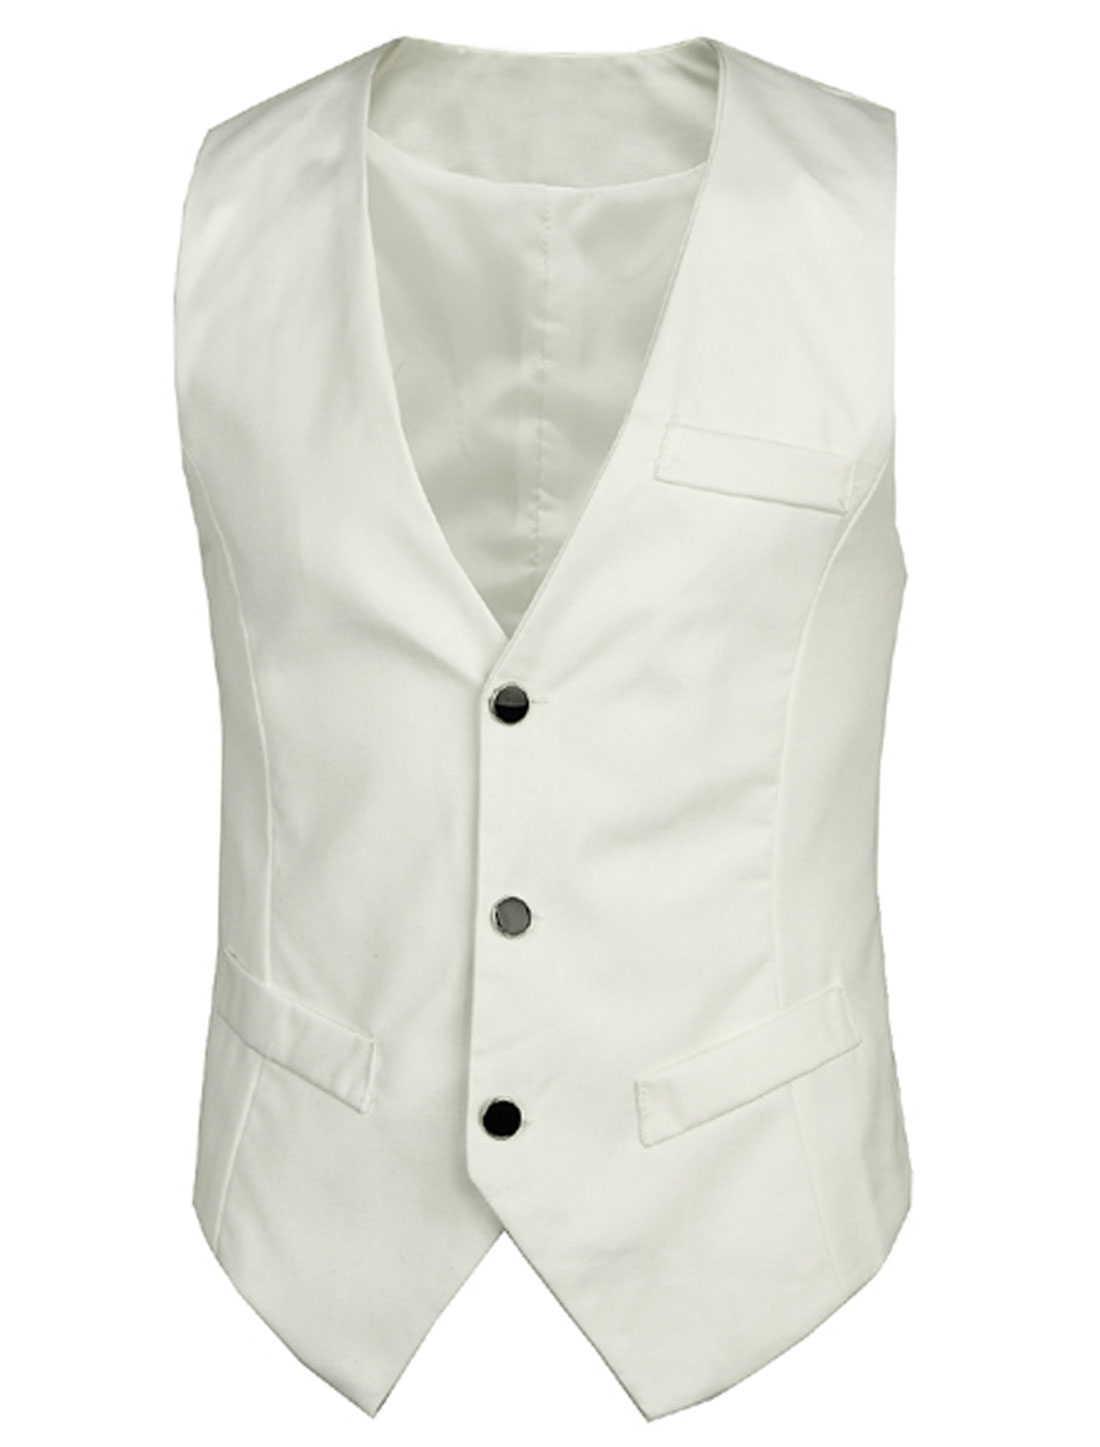 Sleeveless Deep V Neckline Trendy Vest for Men White M